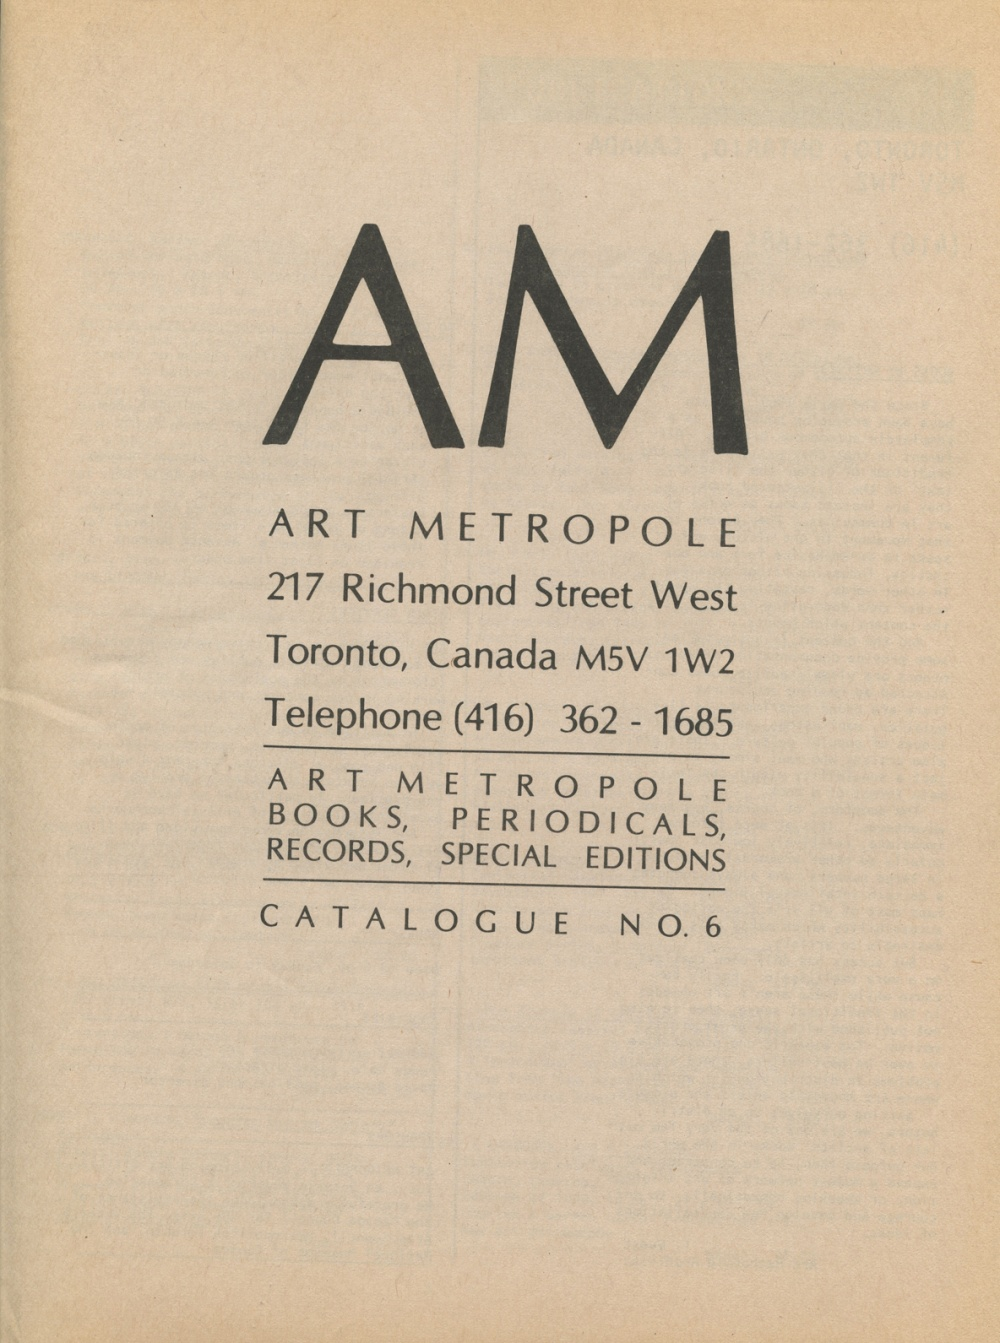 AM. Art Metropole Books, Periodicals, Records, Special Editions.